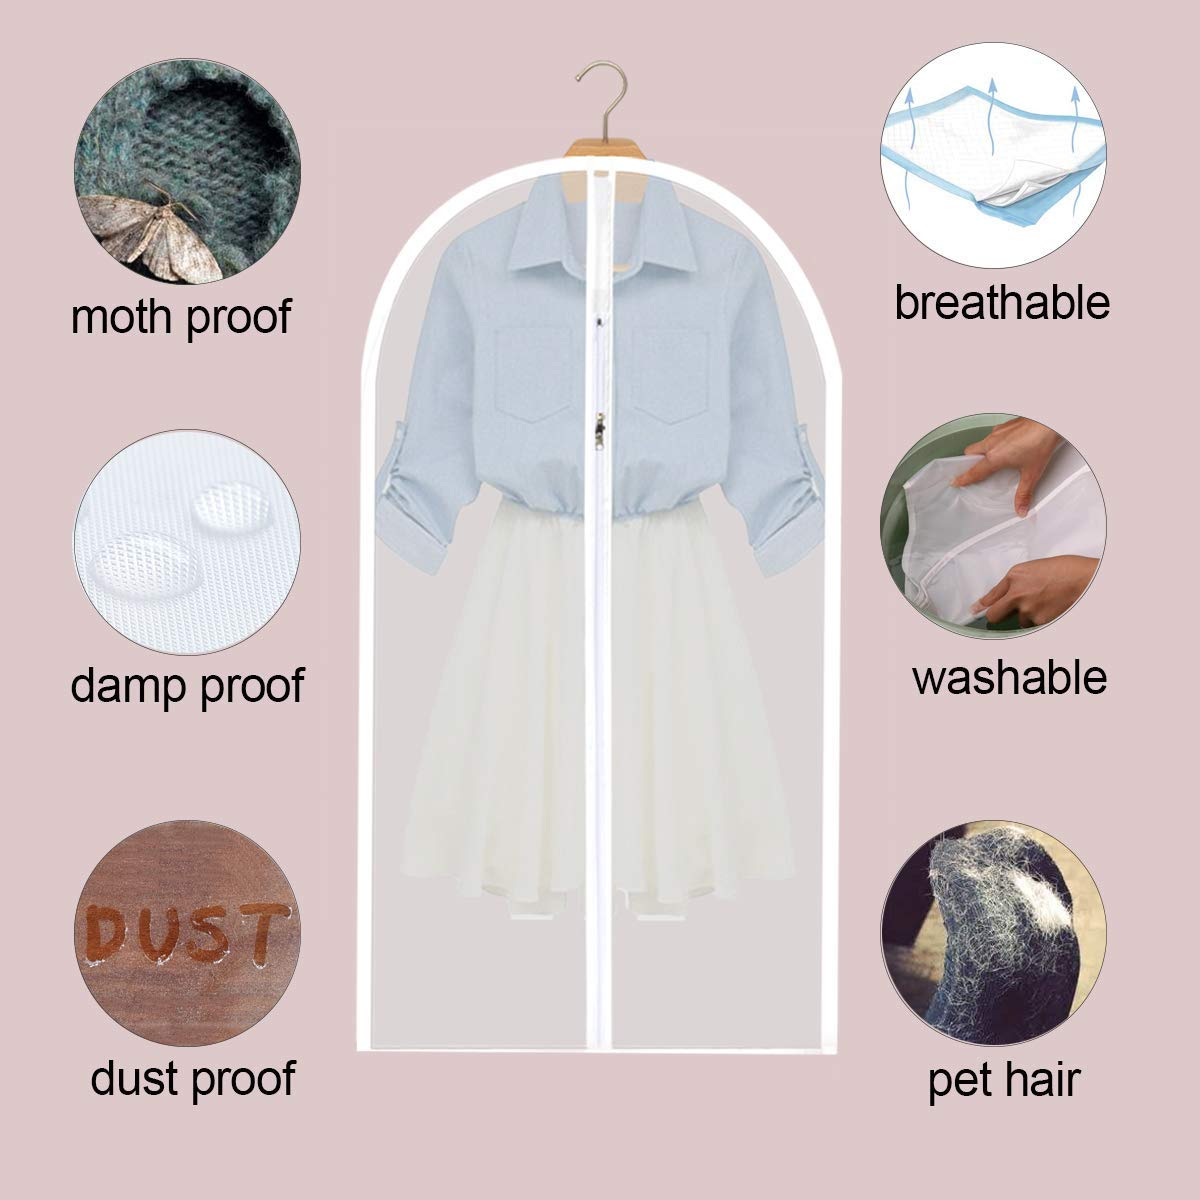 Garment Bag Clear Suit Dress Moth Proof Garment Bags Dust Cover White Breathable Bag with Full Zipper for Clothes Closet Storage Pack of 6 by homebags (Image #3)